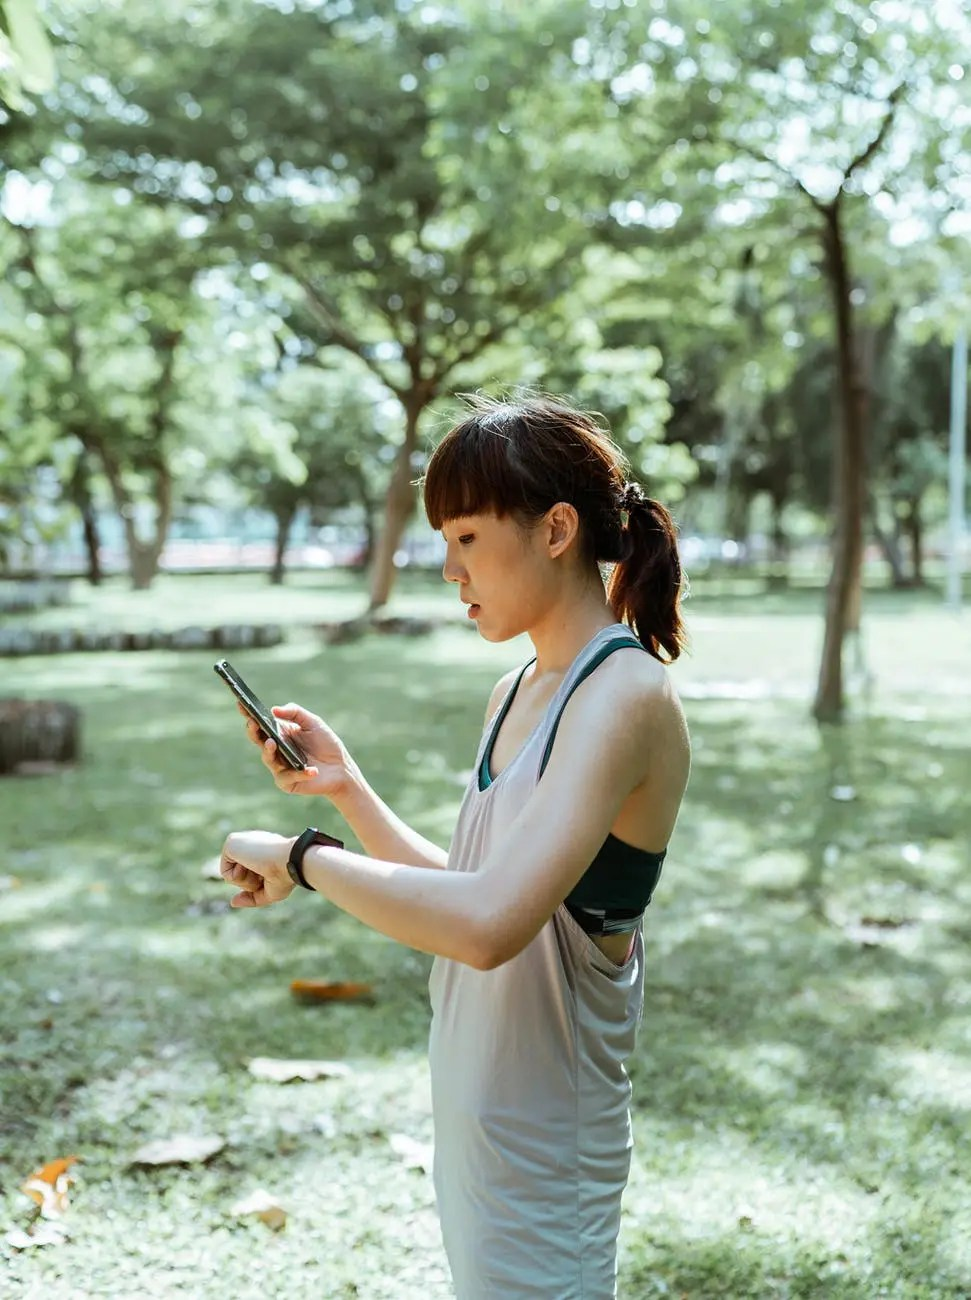 slim asian woman using smart watch and smartphone in park